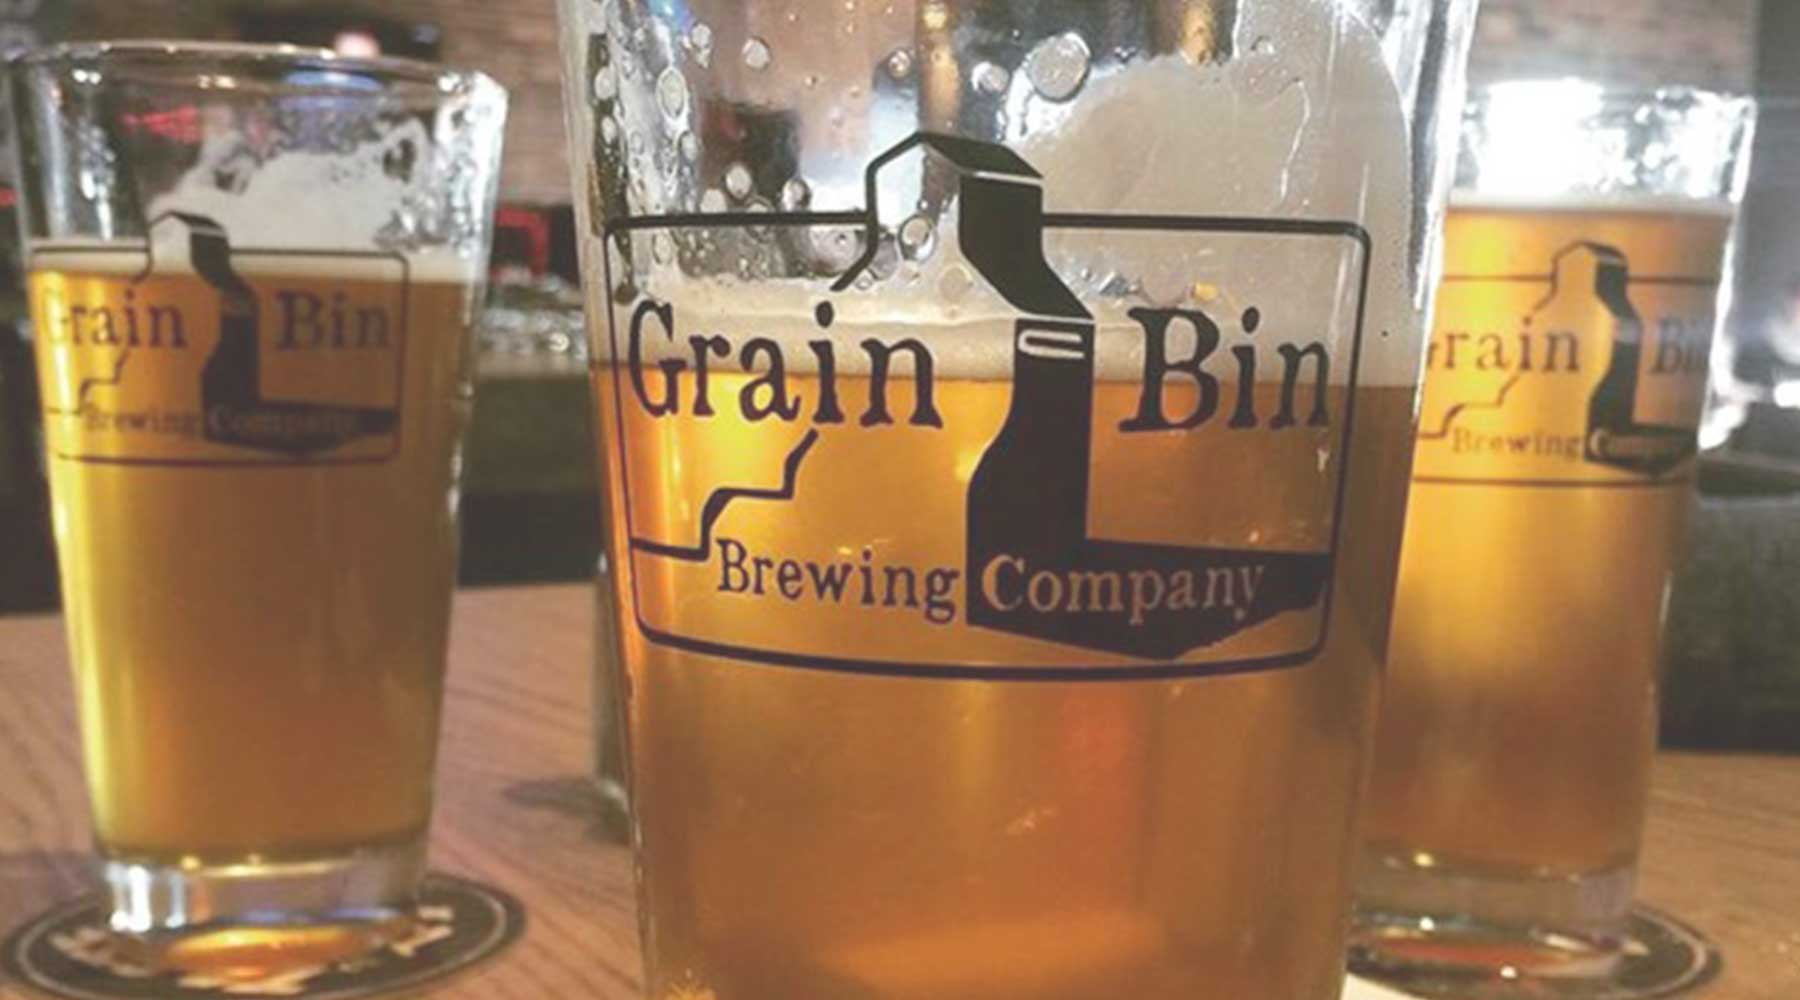 Grain Bin Brewing Company | Just Wine